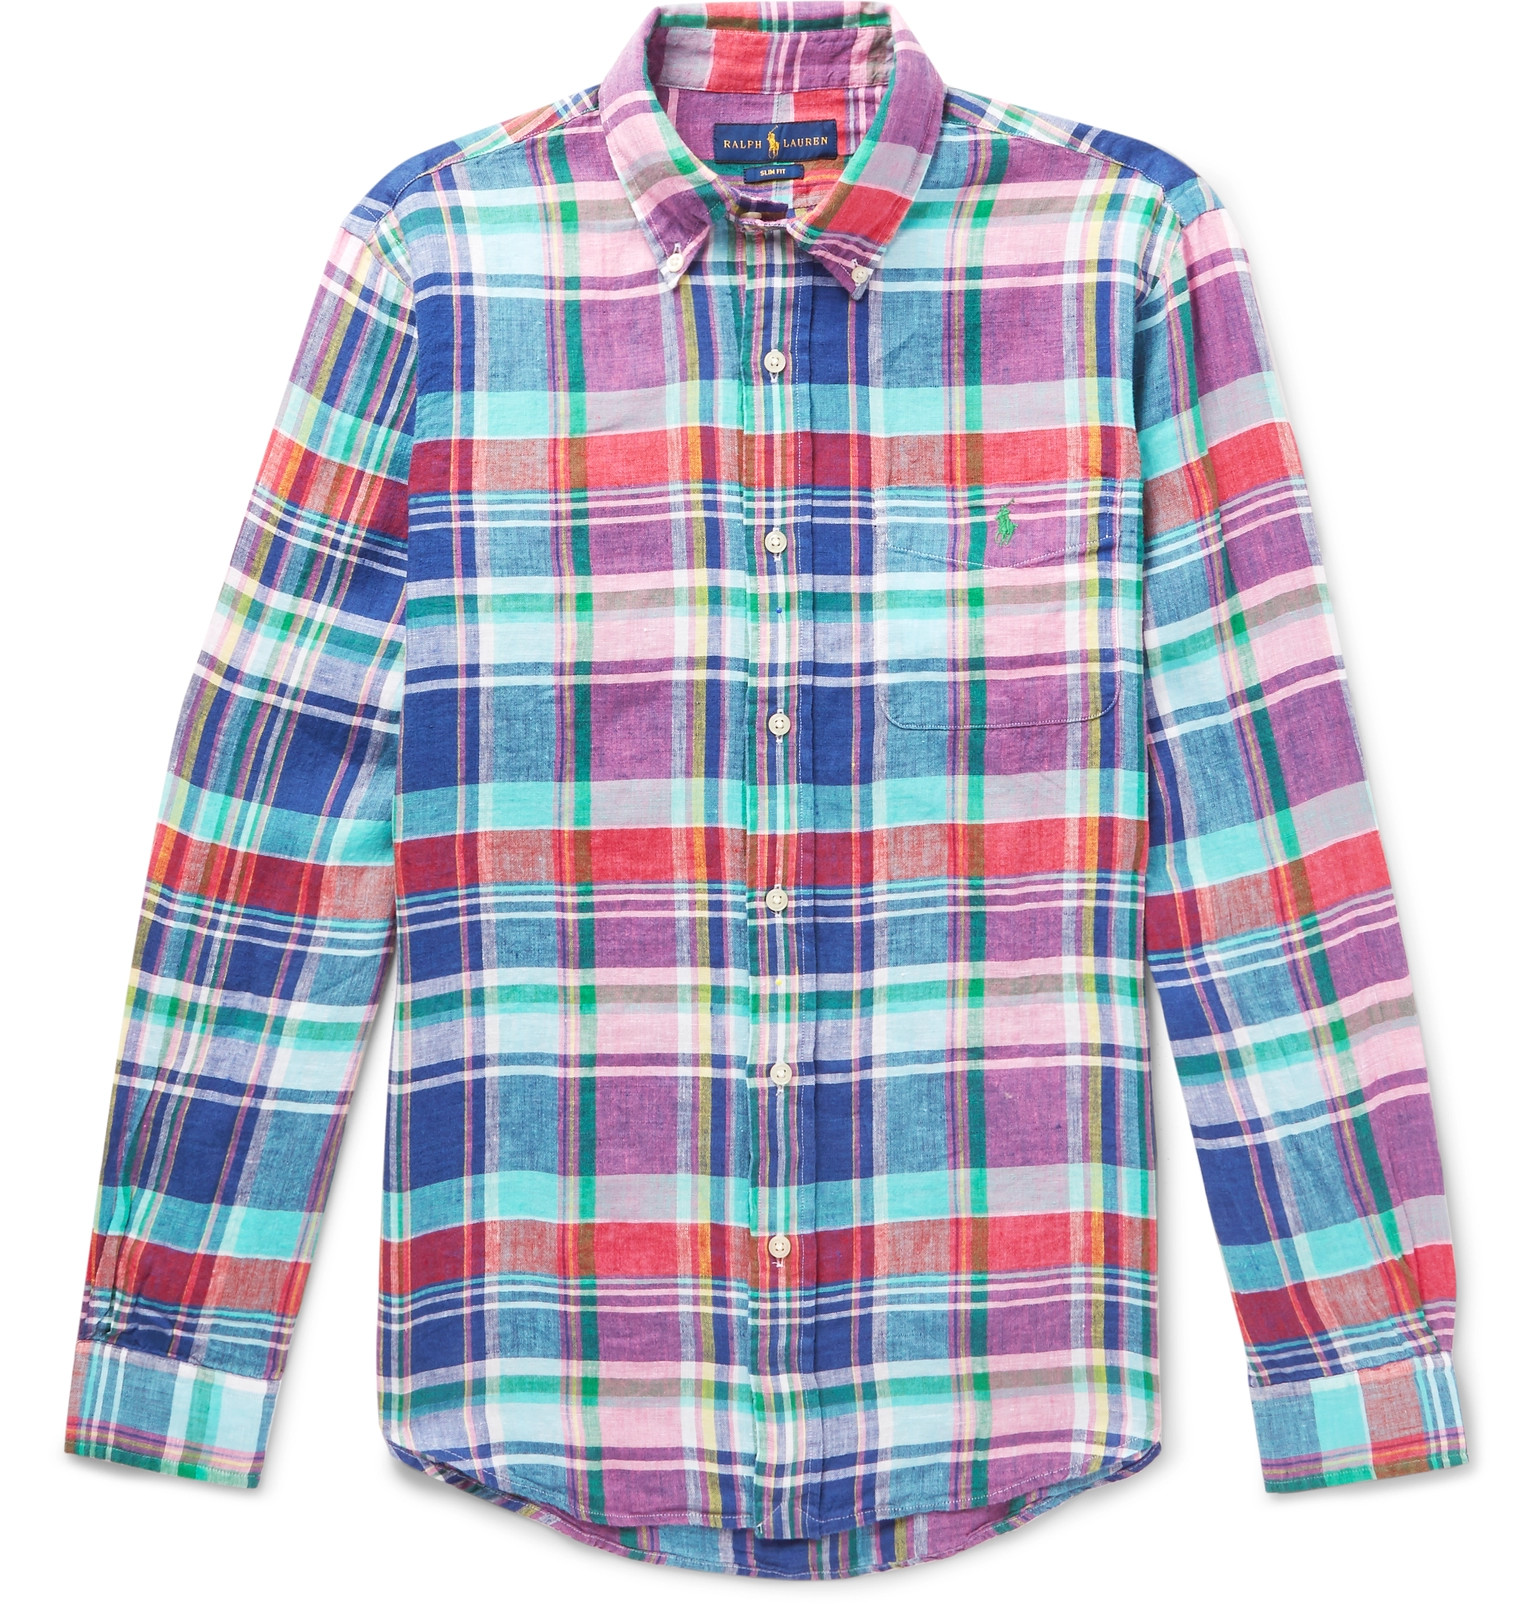 420f6c5ee Polo Ralph Lauren Checked Oxford Button Down Shirt Slim Fit